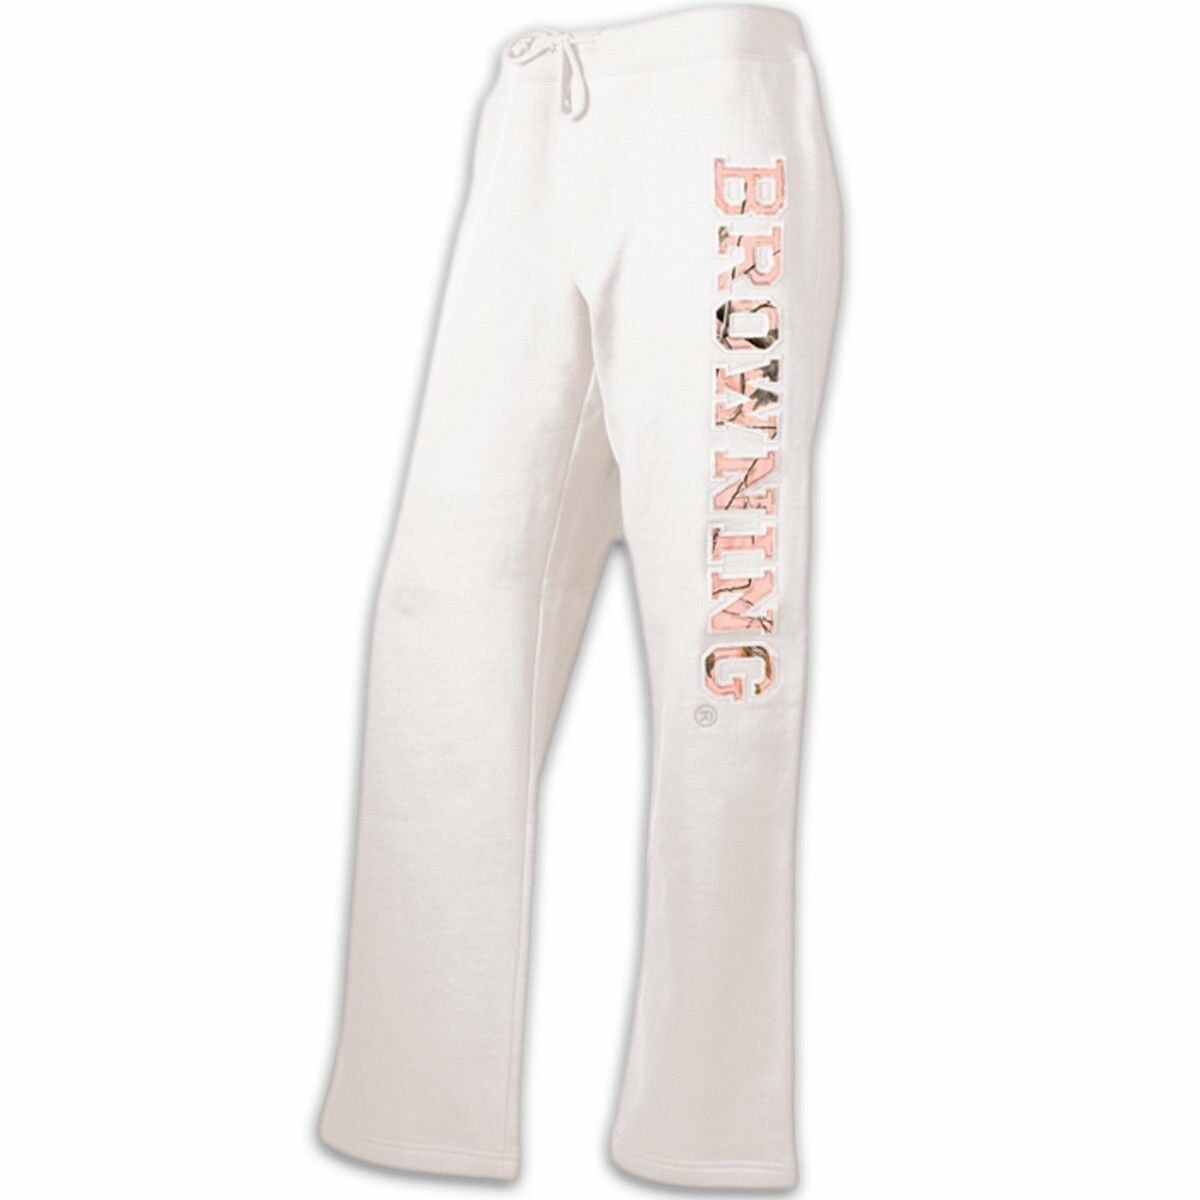 Womens NWT Browning Realtree Pink Camo White Relaxed Fit Sweatpants S-XL